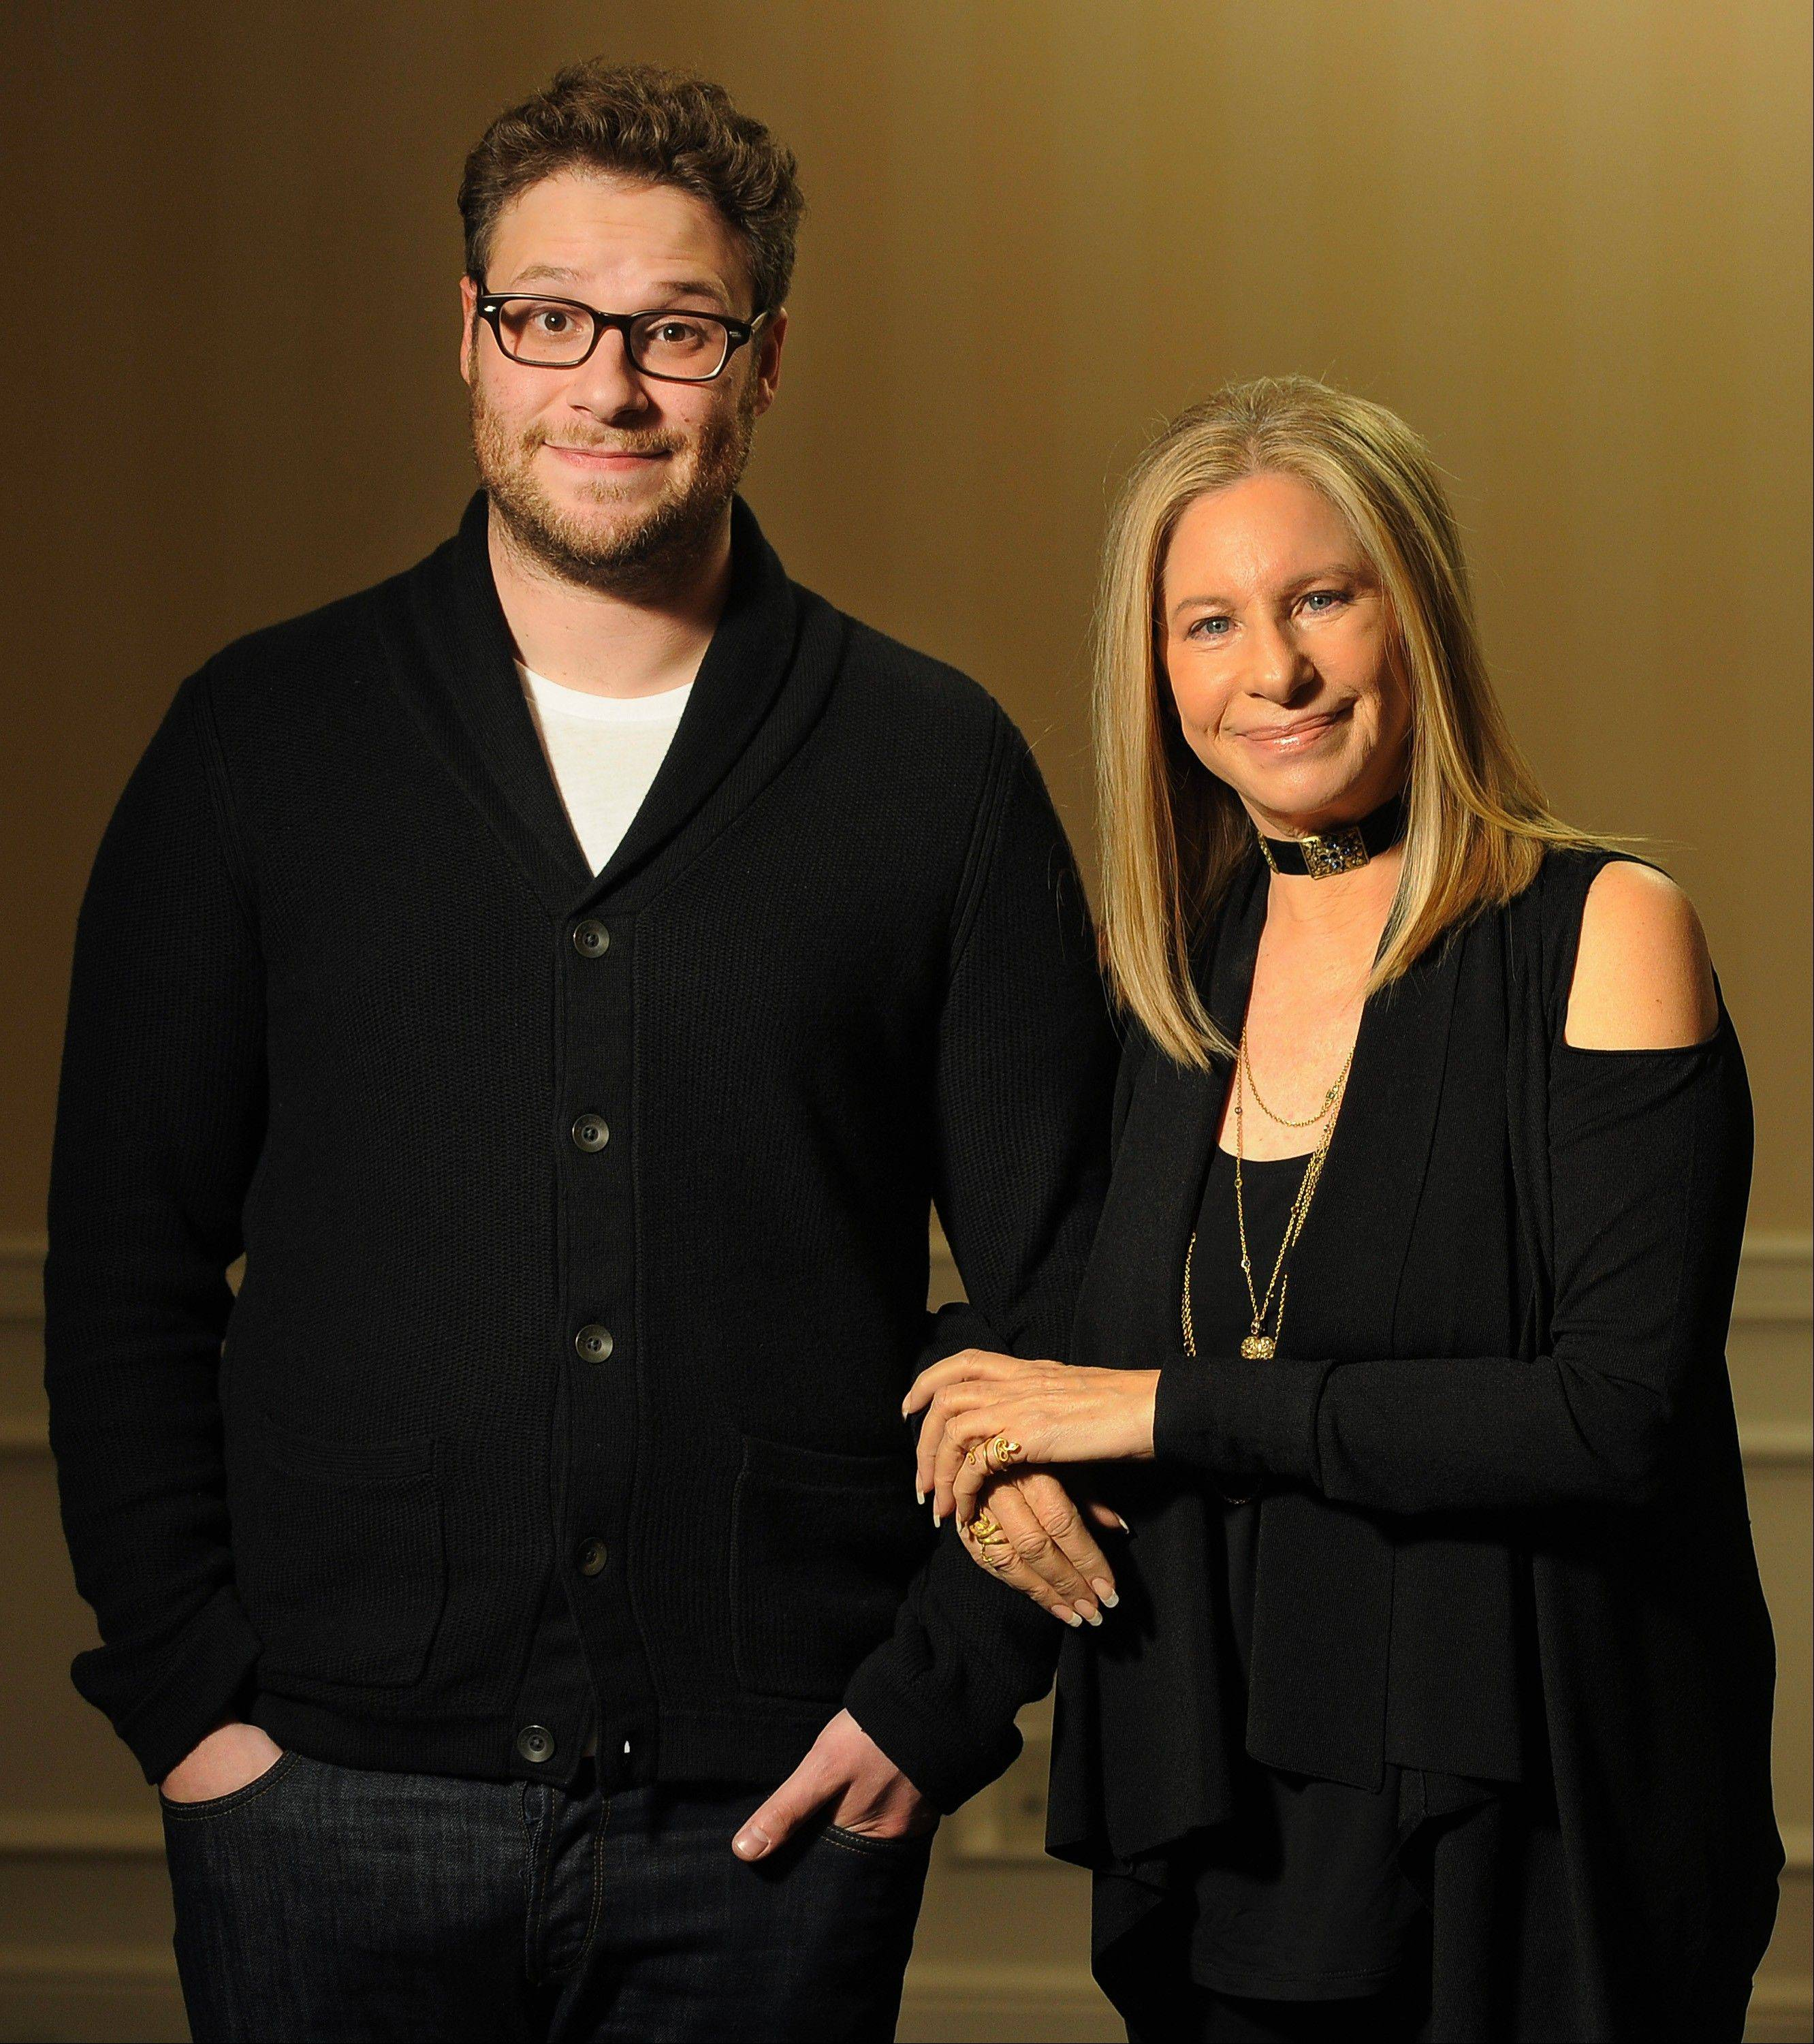 Seth Rogen and Barbra Streisand approach work similarly, they say, and they really became like mother and son on the set of �The Guilt Trip.�